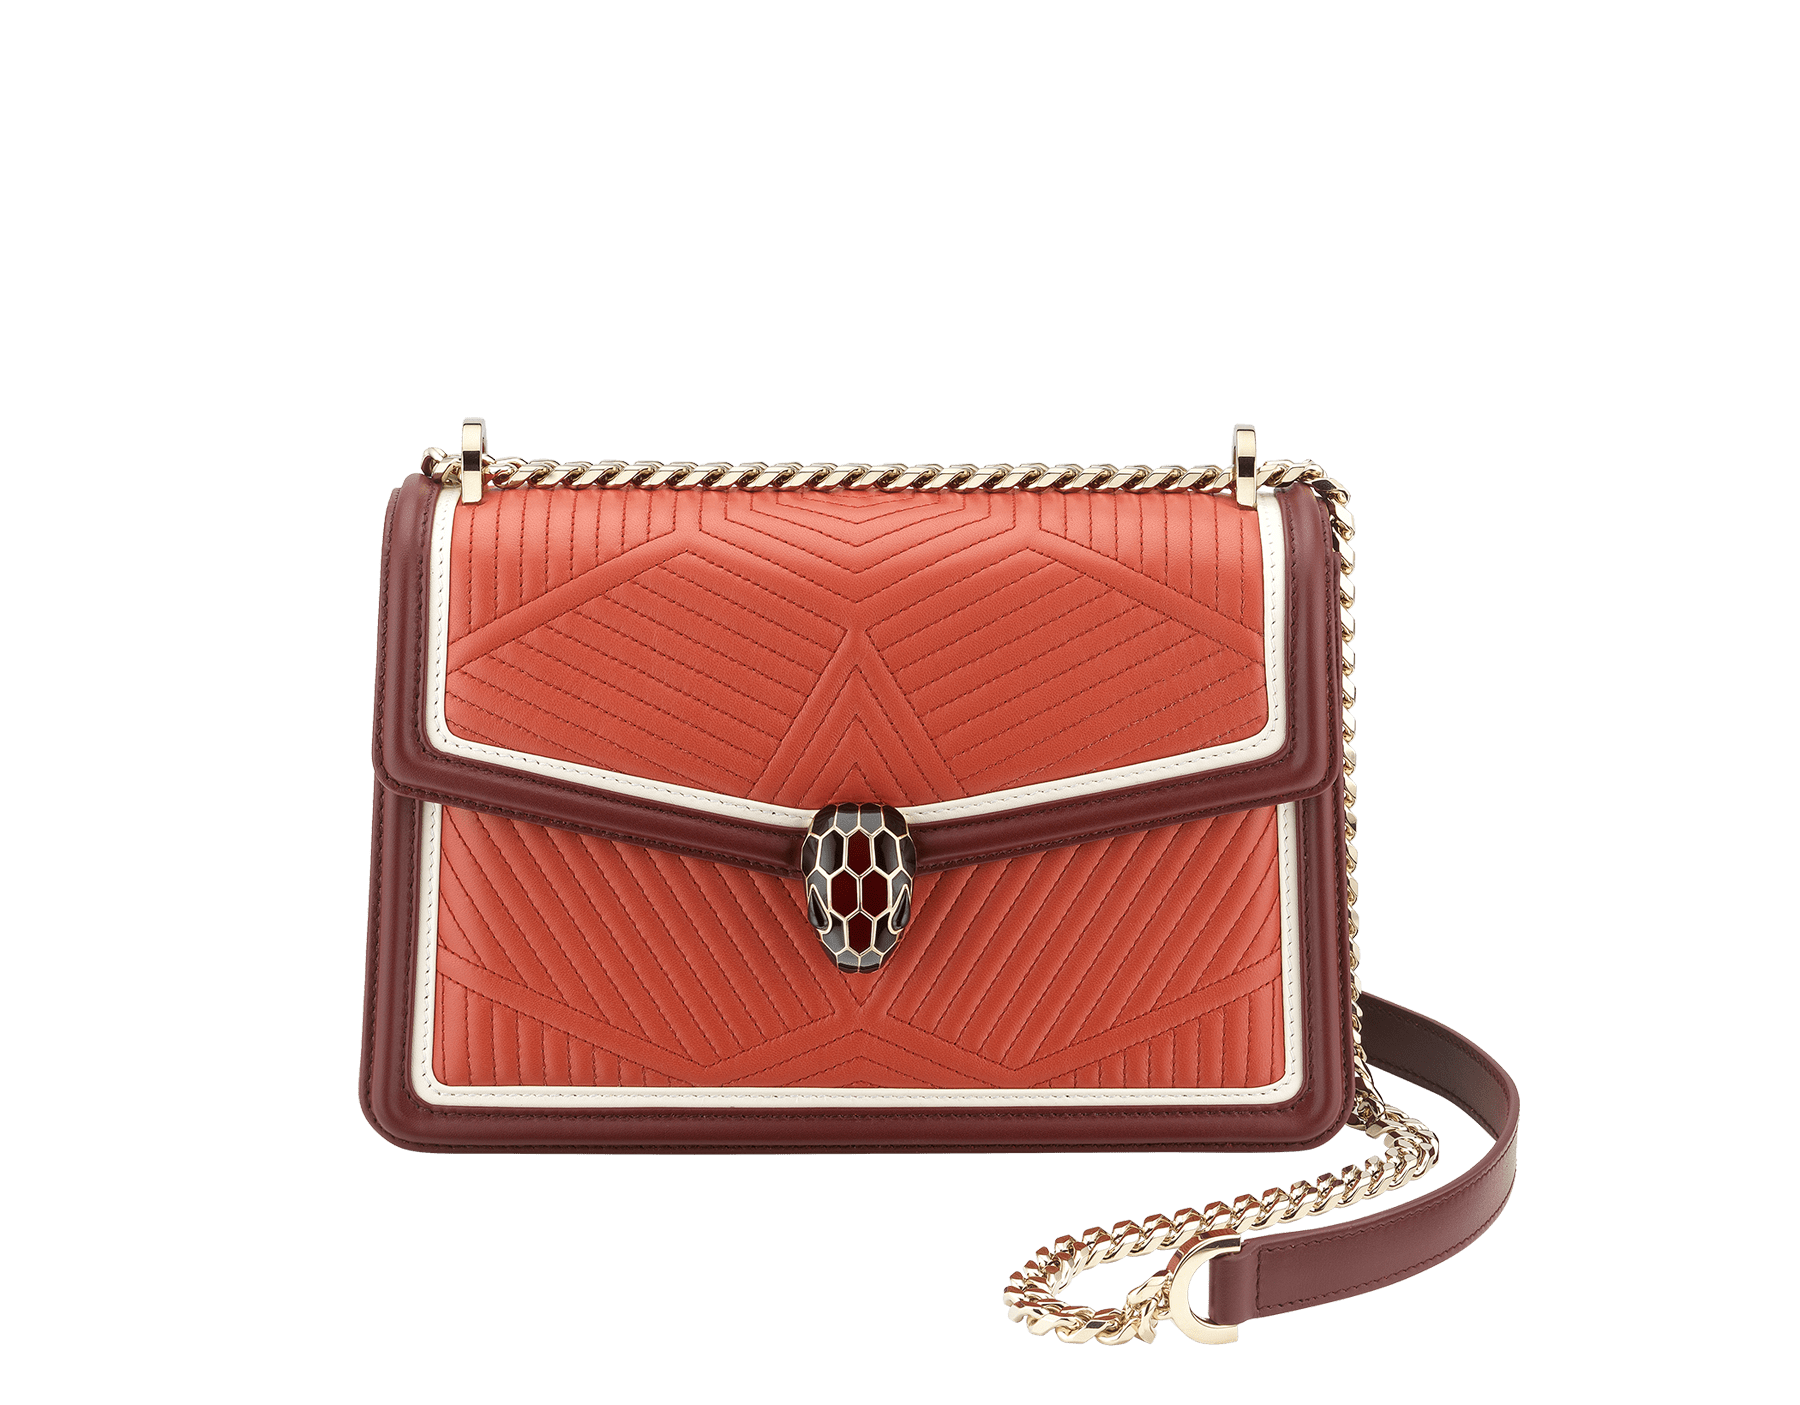 Serpenti Diamond Blast shoulder bag in imperial topaz quilted nappa leather with white agate and Roman garnet calf leather frames. Iconic snakehead closure in light gold plated brass embellished with Roman garnet and black enamel and black onyx eyes. 288827 image 1